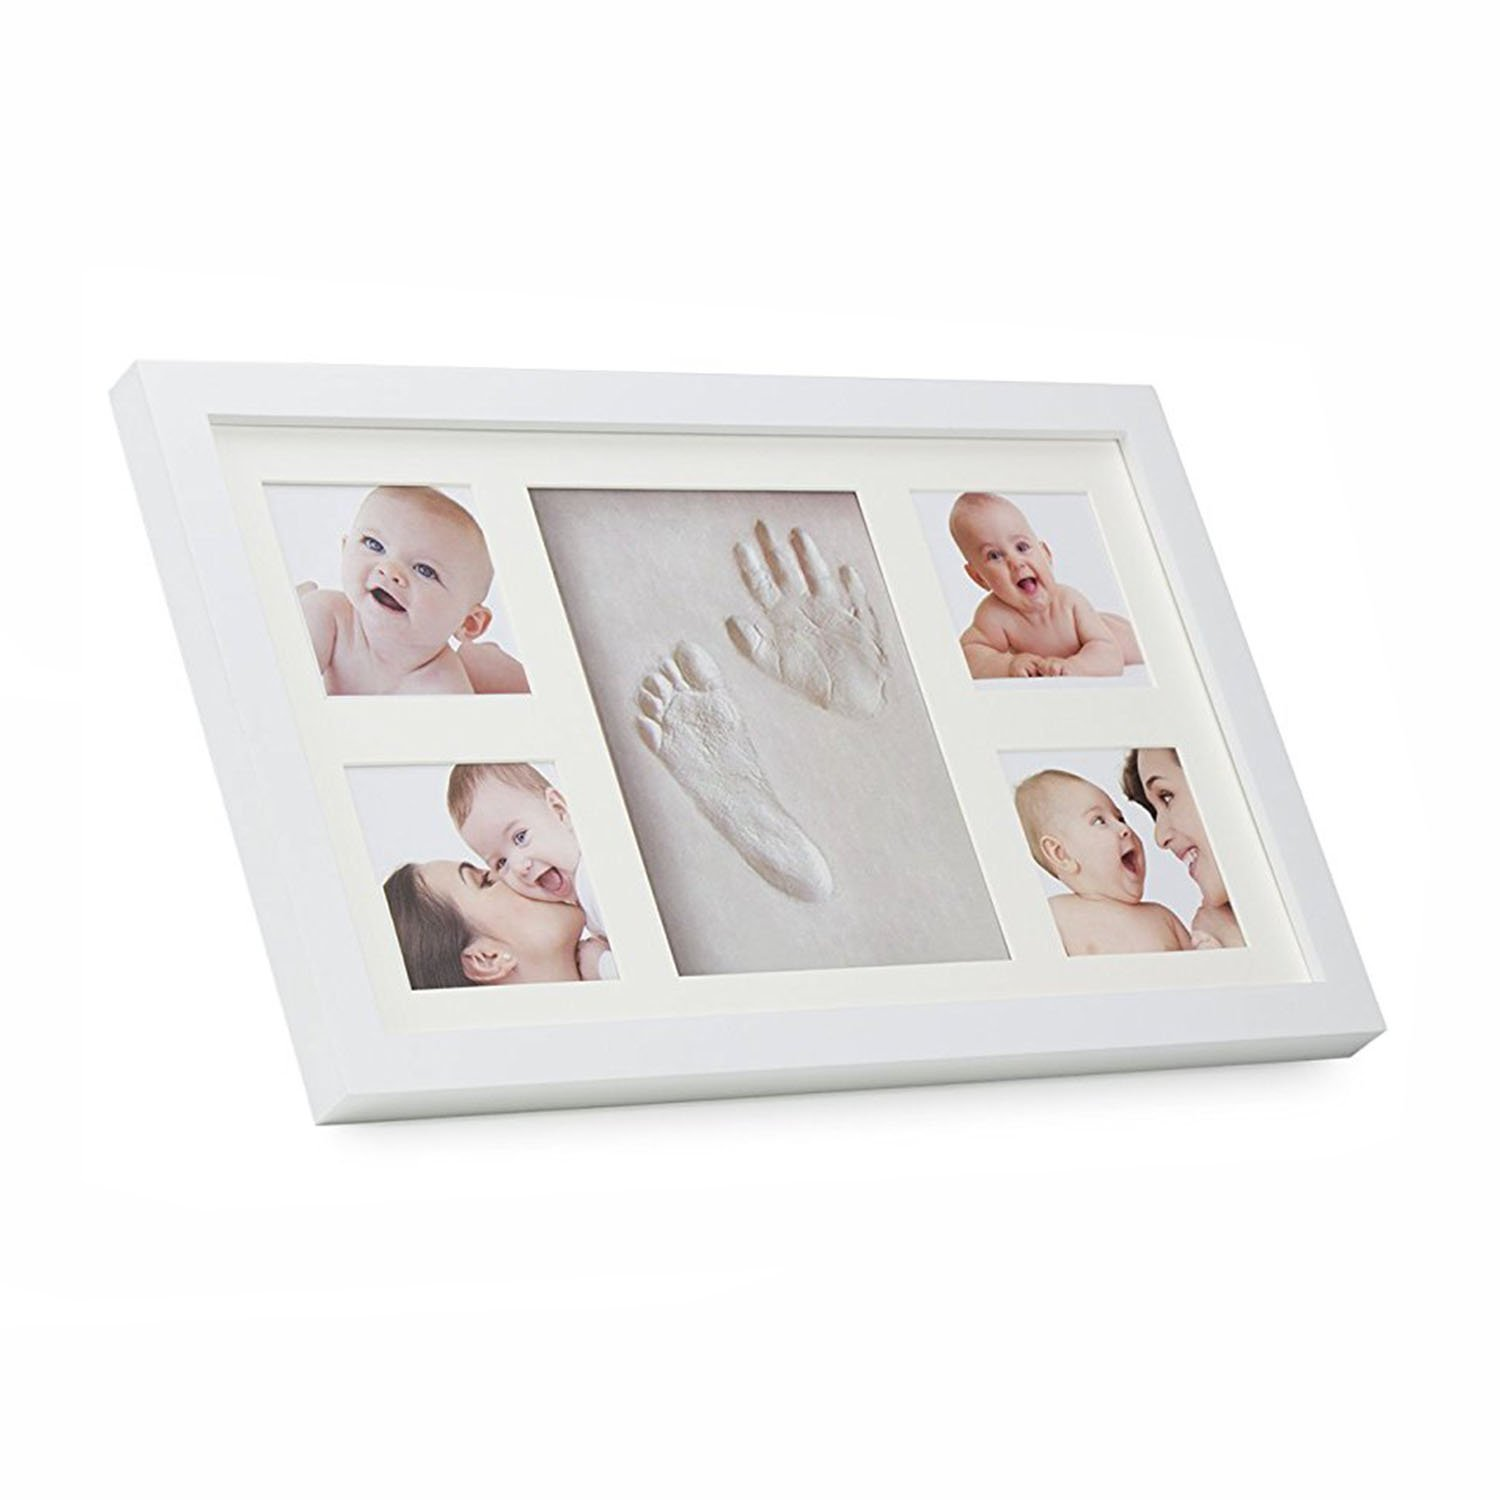 4X photo Baby Handprint and Footprint Picture Frame Kit,Baby Prints Photo Frames for Newborn Baby Gifts Junxave